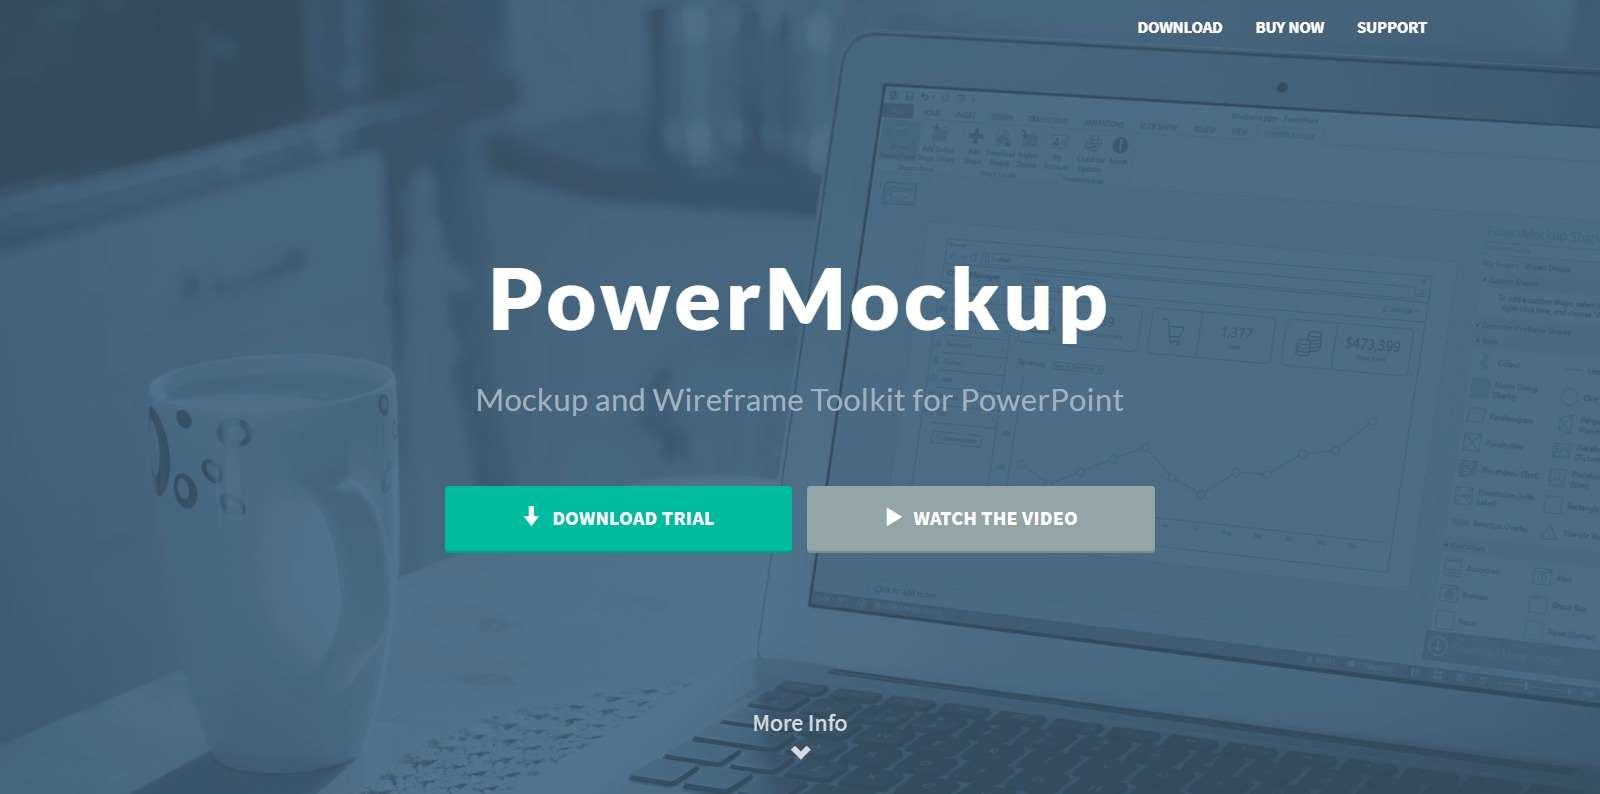 20  Wireframe Tools for Designers   Web3Canvas PowerPoint toolkit for creating wireframes and mockups of mobile  web  and  desktop applications  Goto PowerMockup